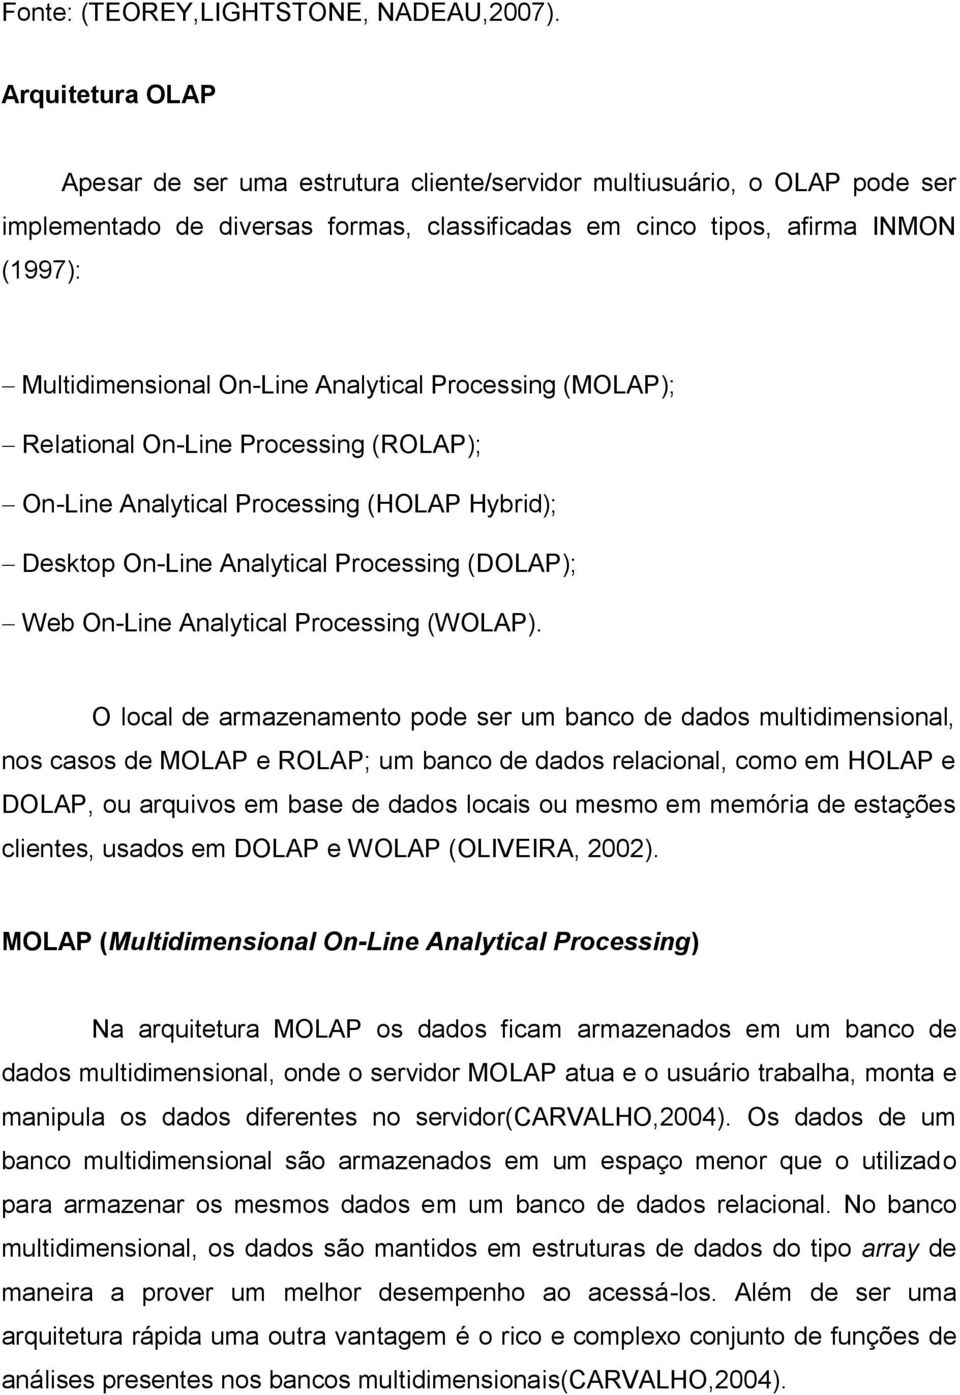 On-Line Analytical Processing (MOLAP); Relational On-Line Processing (ROLAP); On-Line Analytical Processing (HOLAP Hybrid); Desktop On-Line Analytical Processing (DOLAP); Web On-Line Analytical